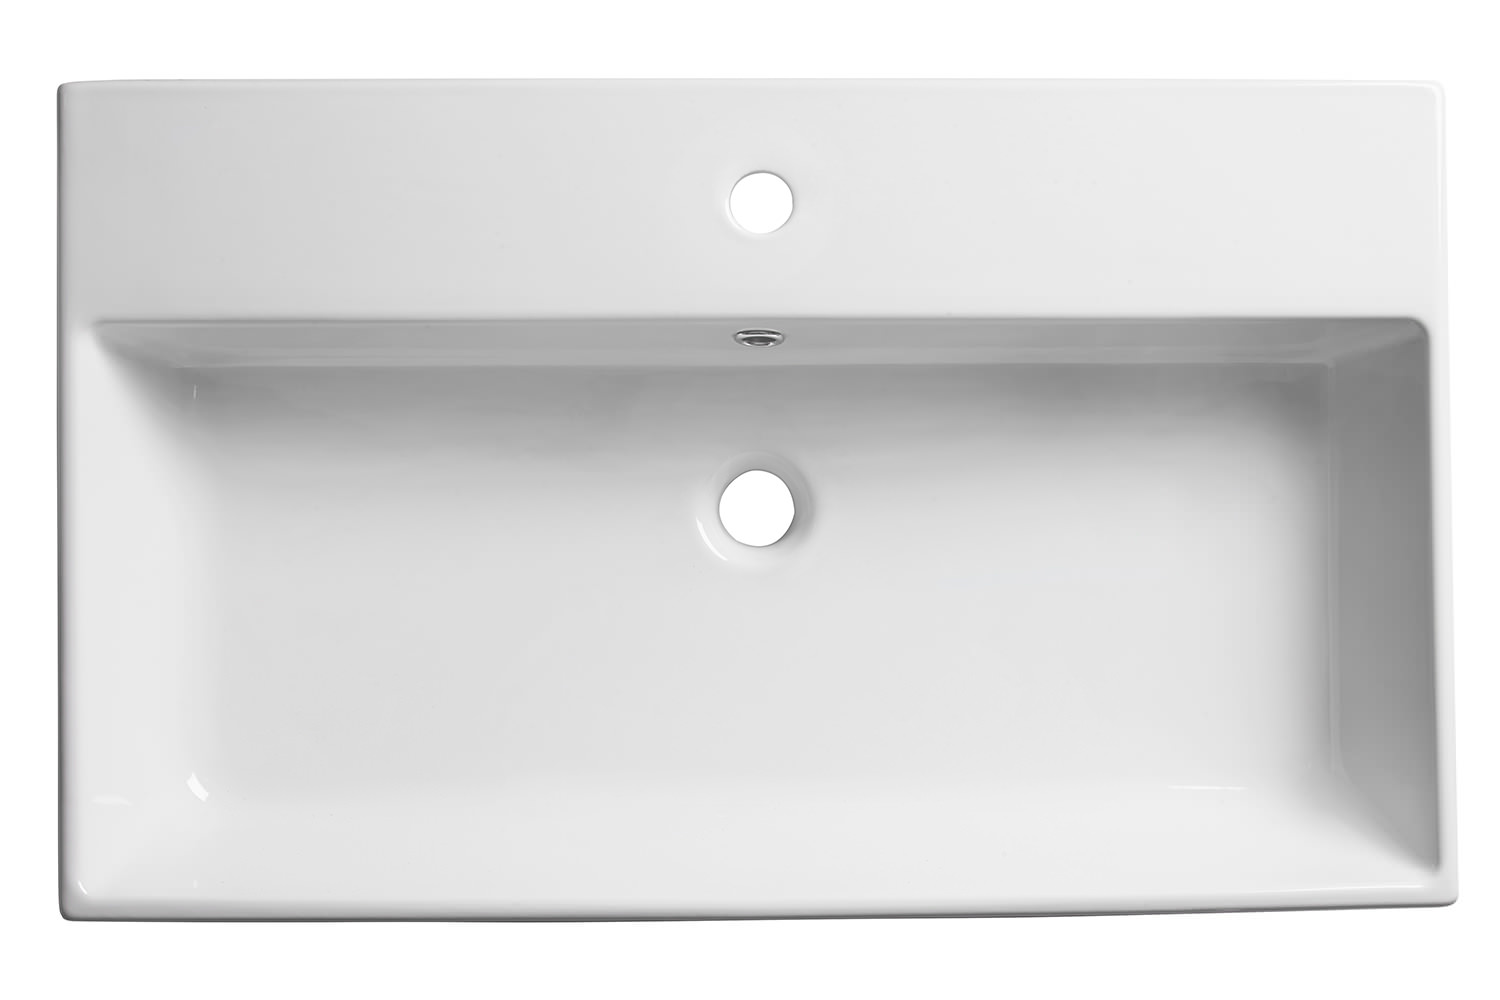 Wide Illuminated Bathroom Mirror With Backlit Effect For Double Or Wide Basins: Roper Rhodes Statement 600mm Wide Wall Mounted Or